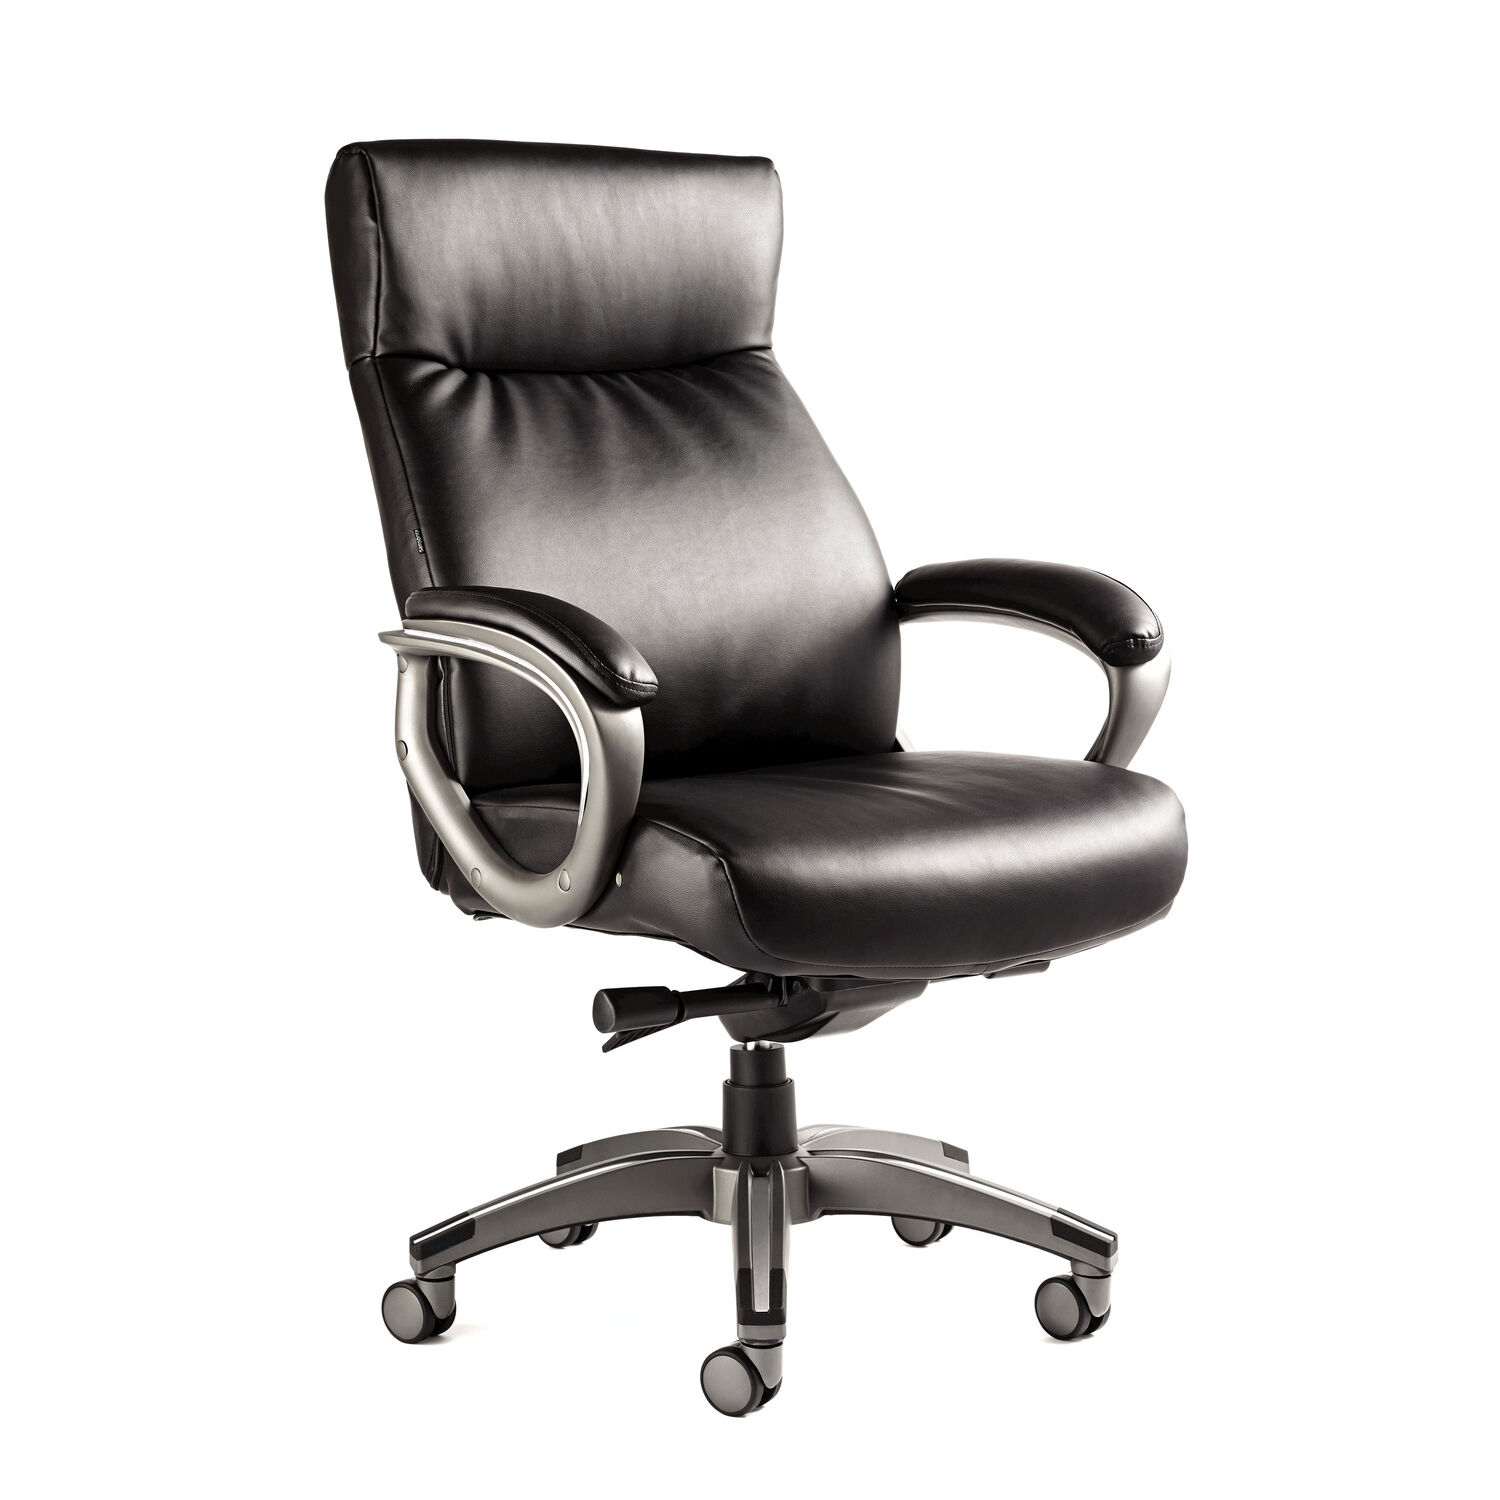 Samsonite Orleans Bonded Leather Chair in the color Black Samsonite Orleans Bonded Leather Chair. Samsonite Executive Leather Office Chair. Home Design Ideas